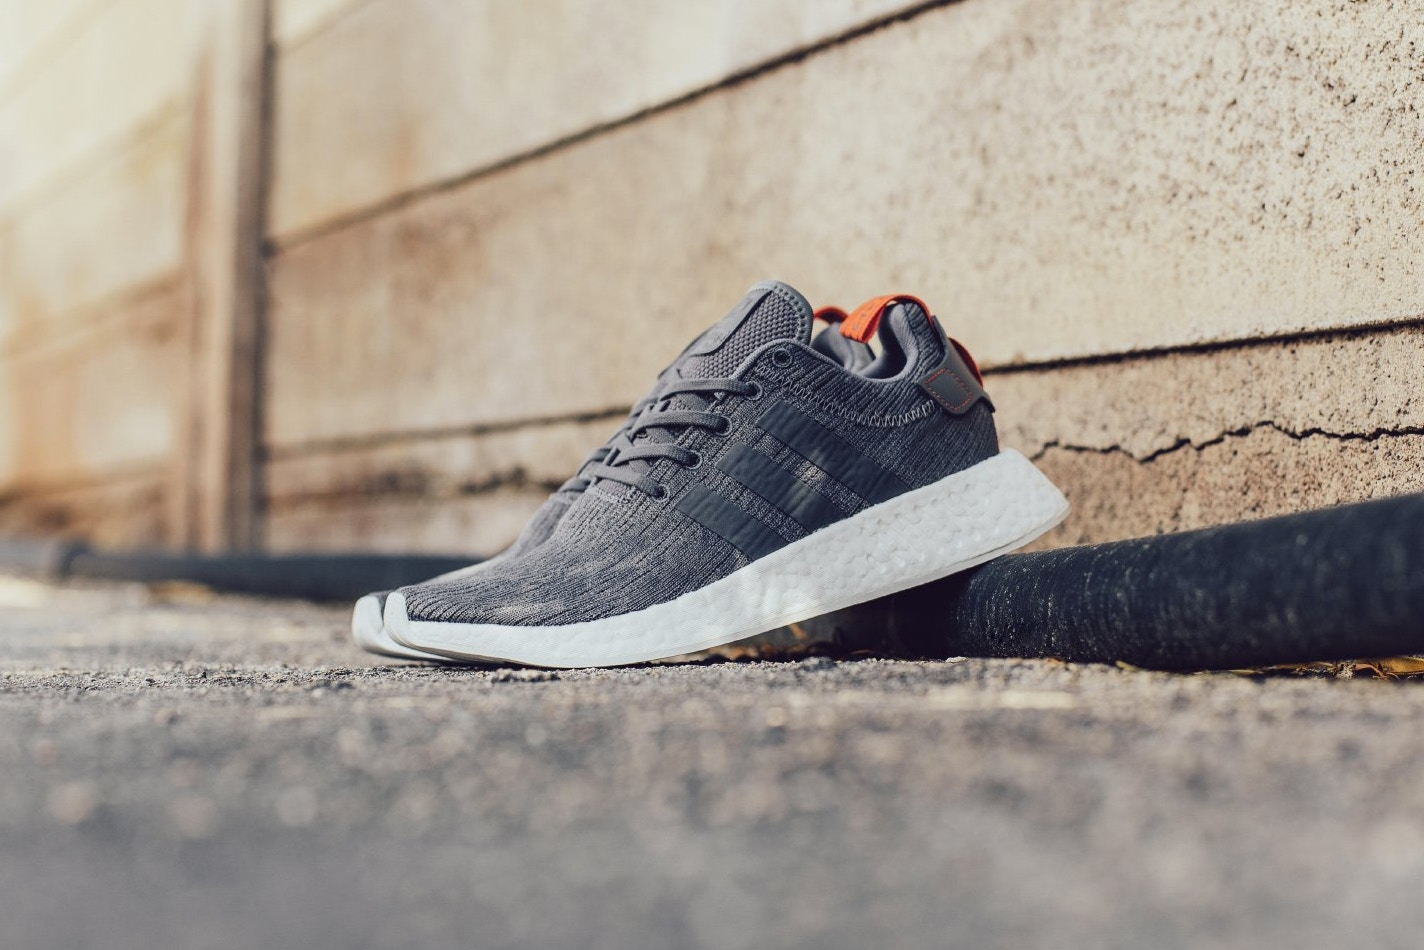 Adidas NMD_R2 Grey/Future Harvest